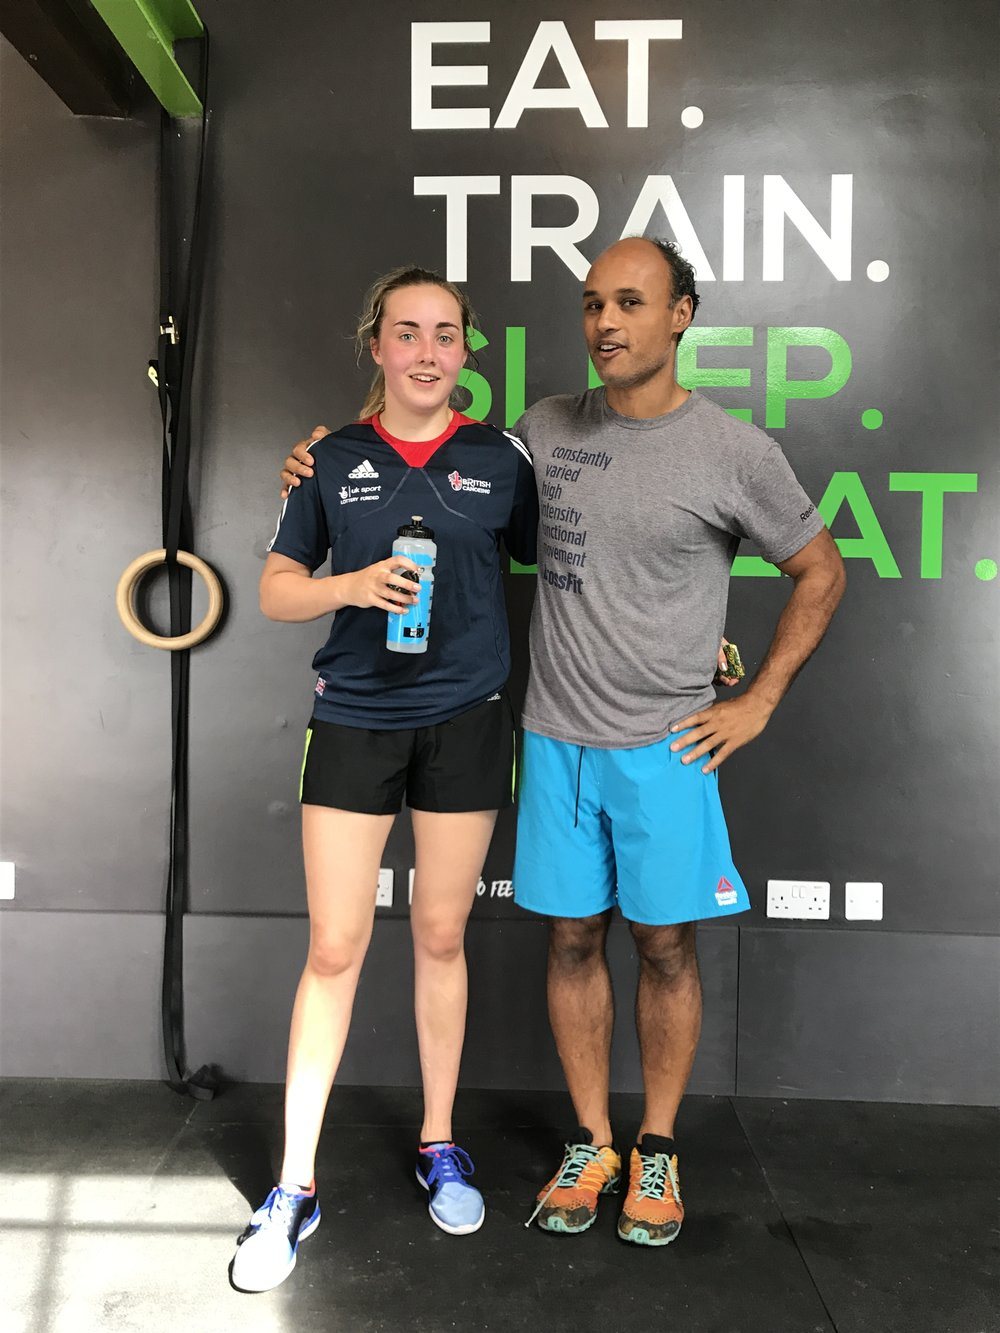 There are no excuses just choices - From the 1st day Victoria walked through our doors asking if we could help her to get stronger & fitter to achieve her goal - be part of GB's Olympic team - we knew she was something special.On short break from her training camp, she dropped in for a workout. She got a long road ahead to become an Olympian and we are very proud of her. She is a great example for all our other teens in our box. We will keep you up to date with every step she takes.Keep on going Victoria - every rep counts!